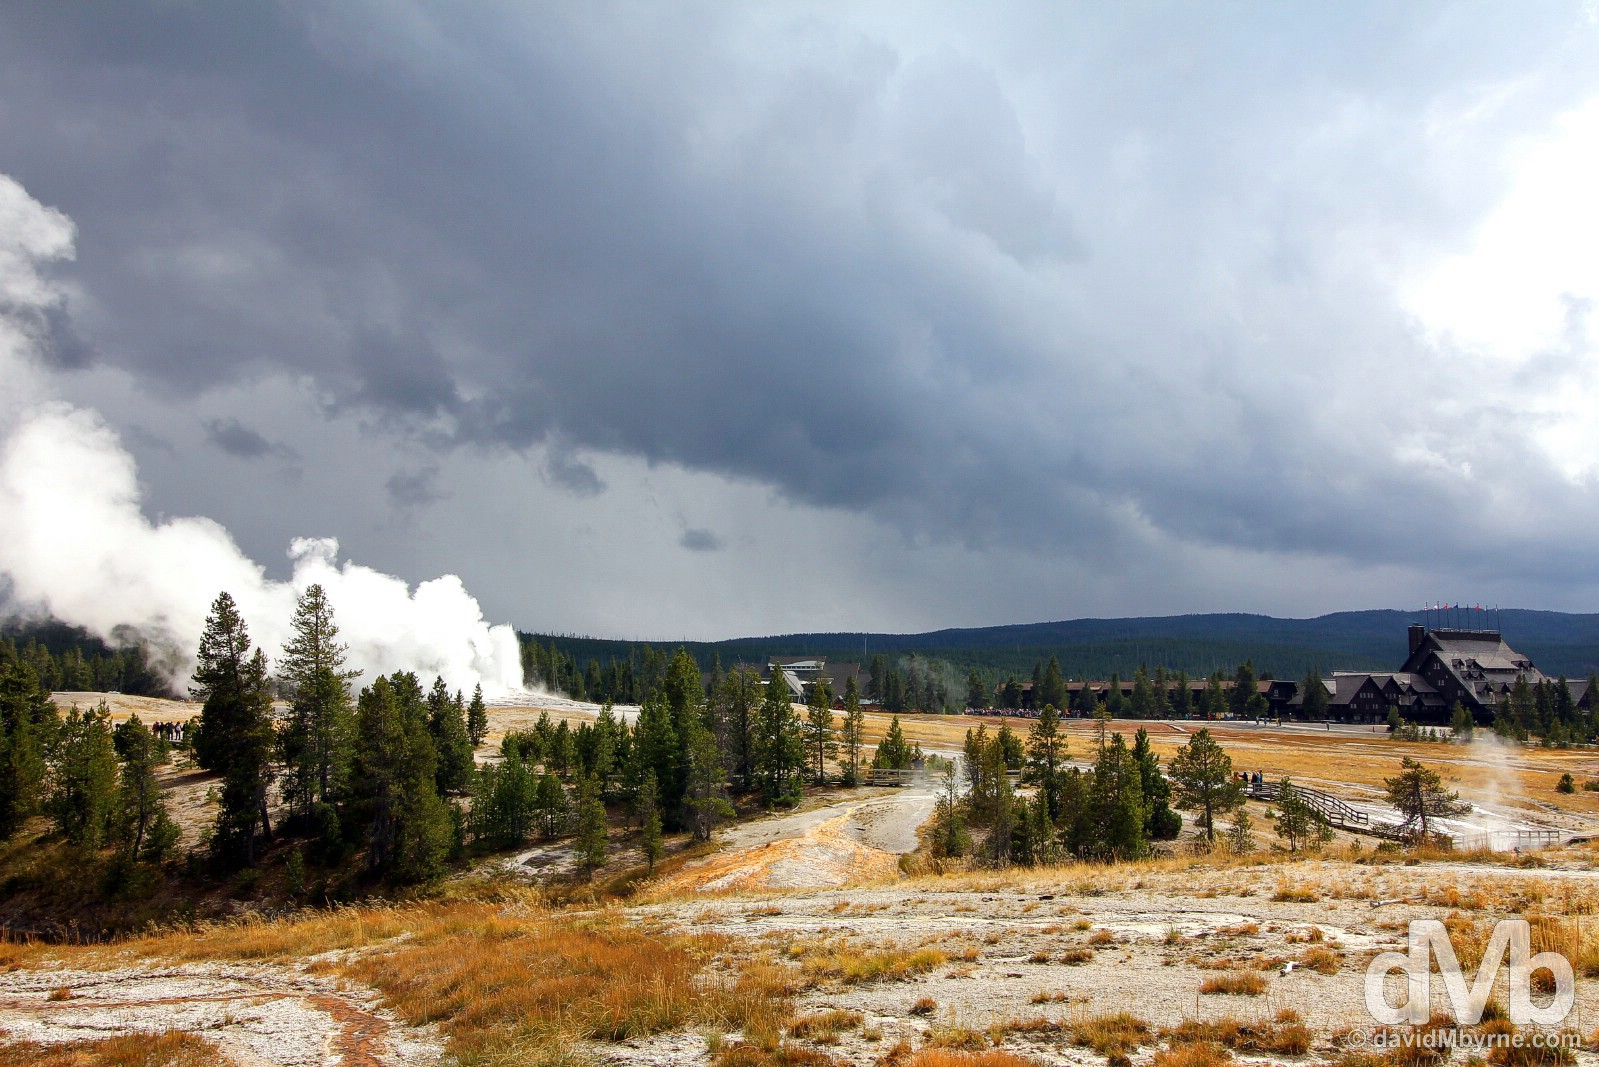 Old Faithful and the Old Faithful Inn as seen from Geyser Hill of Upper Geyser Basin, Geyser Country, Yellowstone National Park, Wyoming, USA. September 5, 2016.